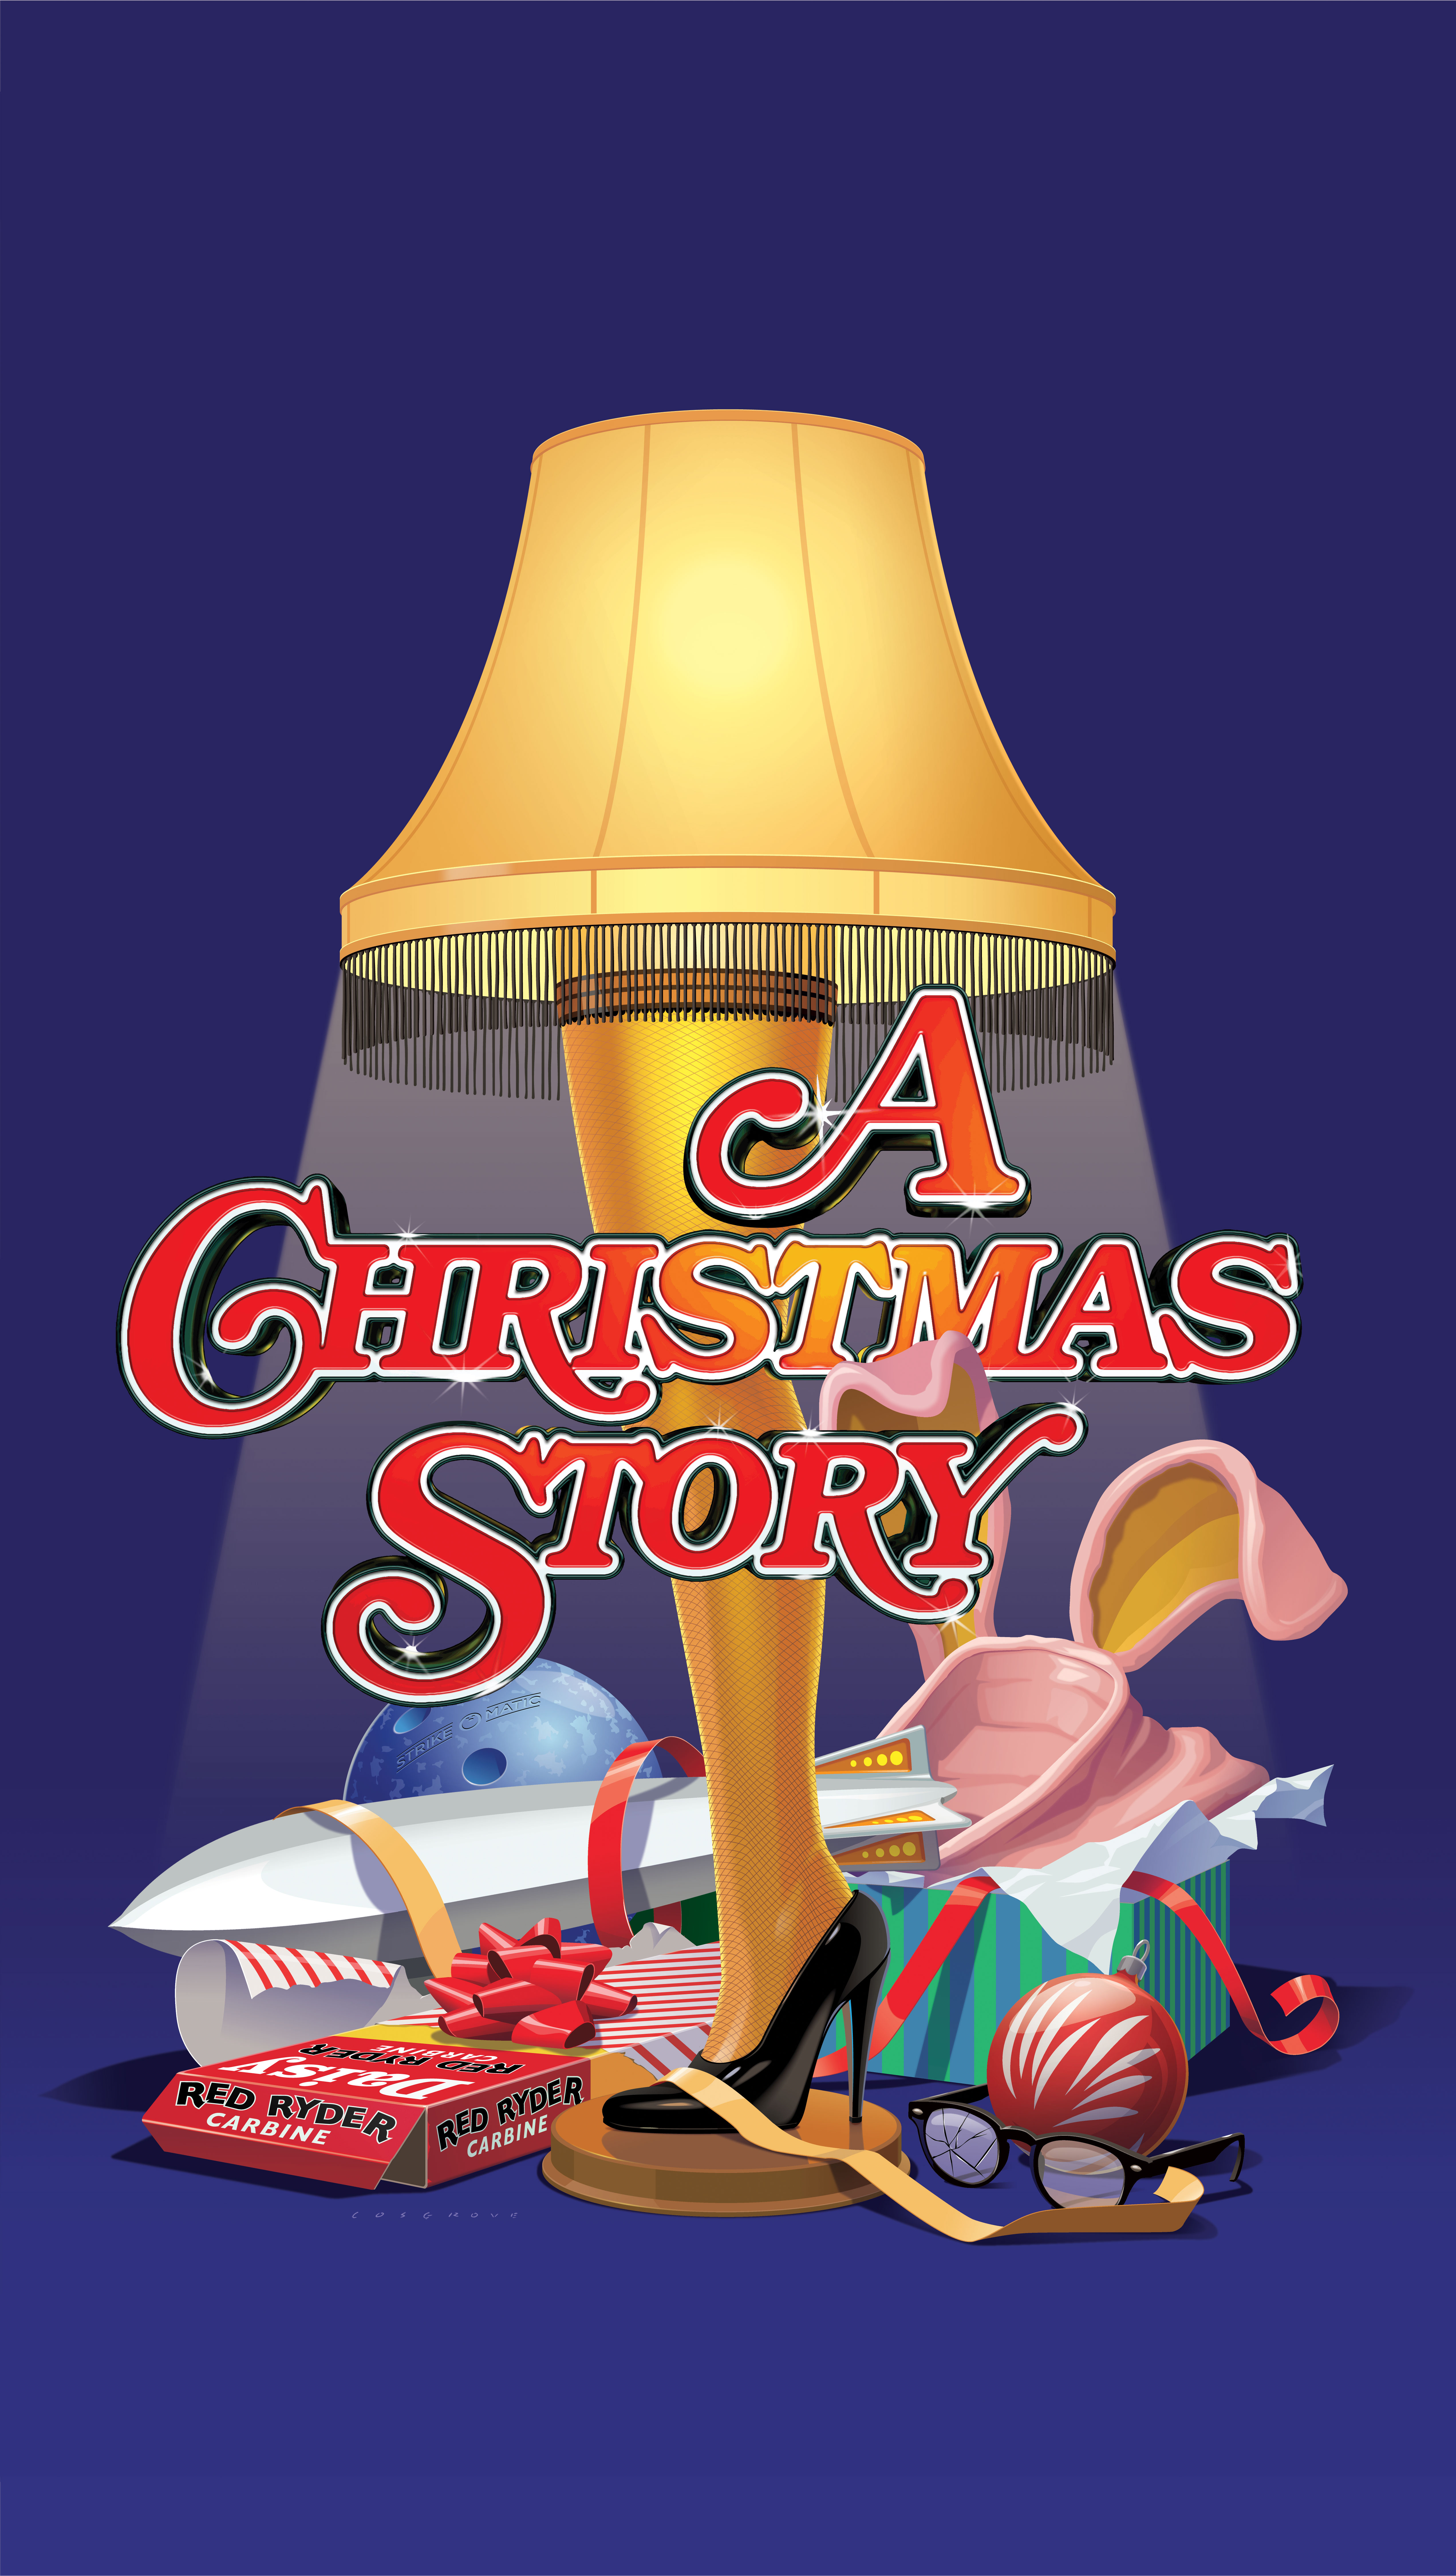 A Christmas Story The Musical.A Christmas Story The Musical